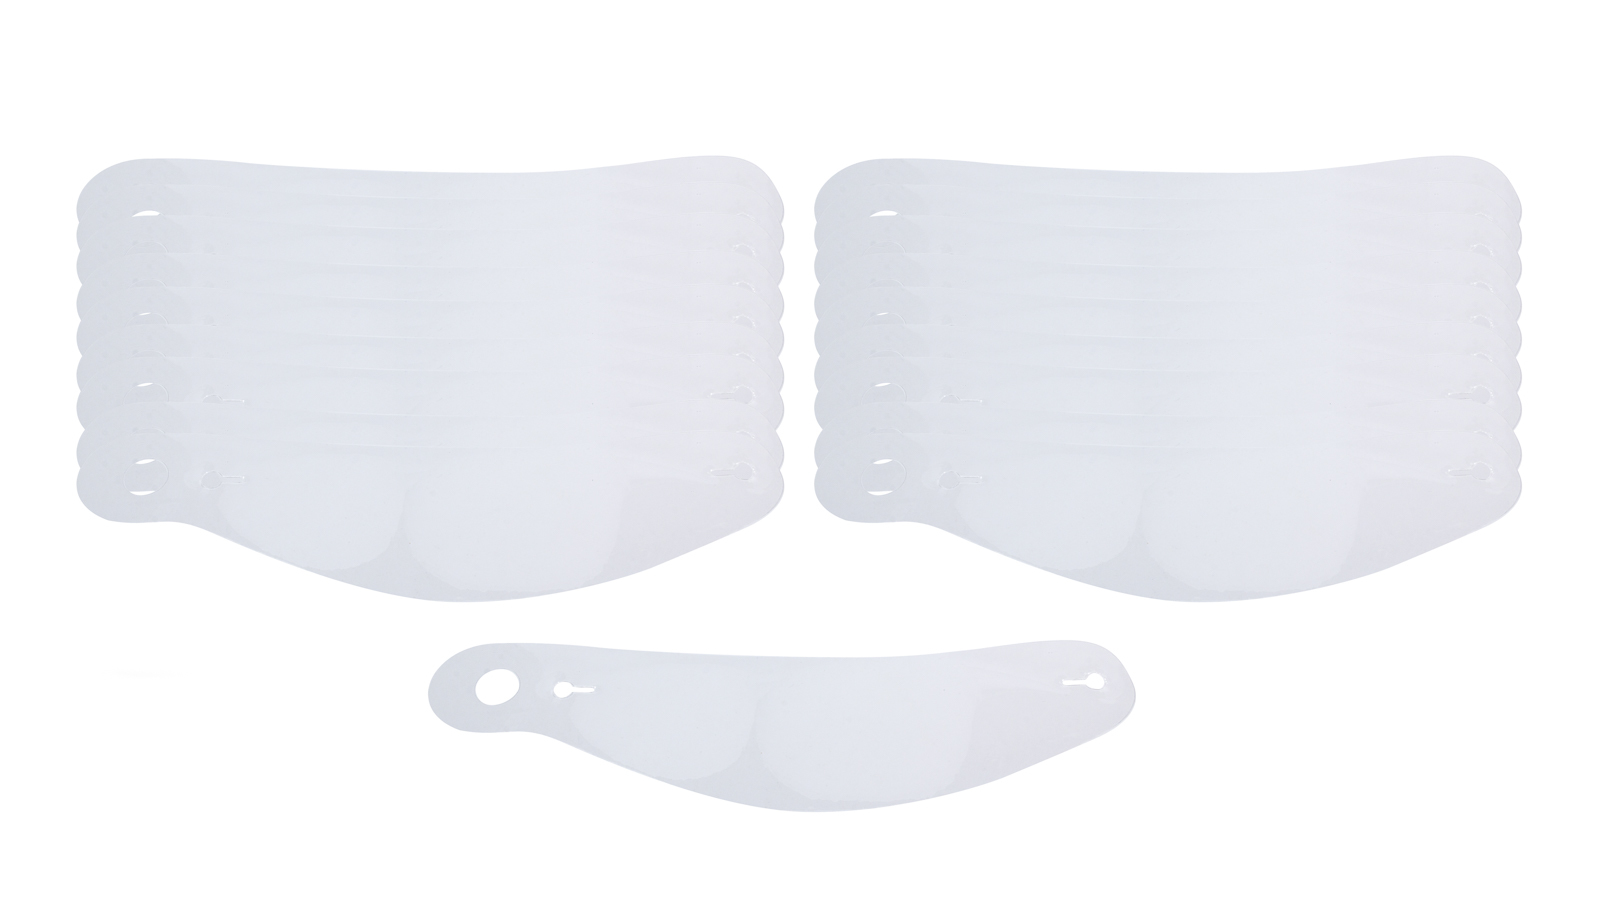 Bell Helmets 2030013 Helmet Shield Tear Off, 2 mm Thick, Curved, Plastic, Clear, Bell Helmets, Set of 20